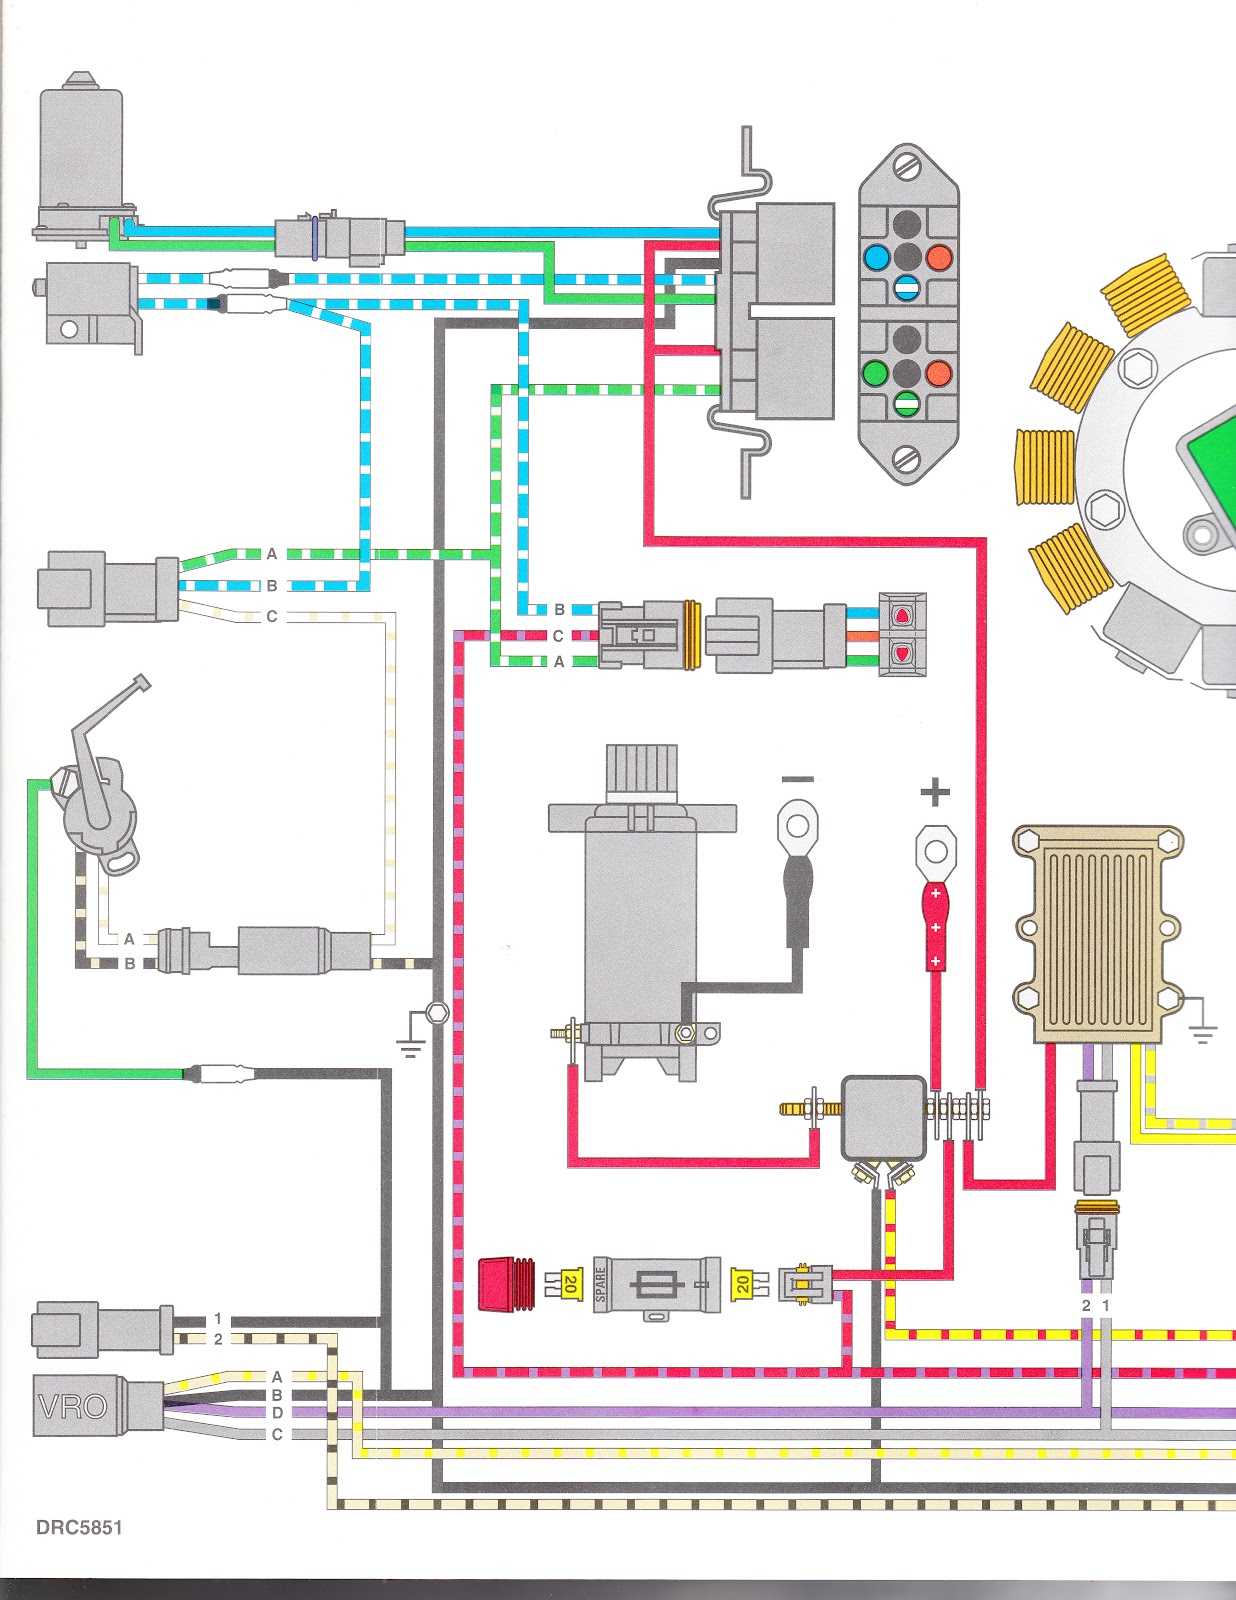 86 Mercury 115 Hp Wiring Diagram Tilt And Trim Image Not Found